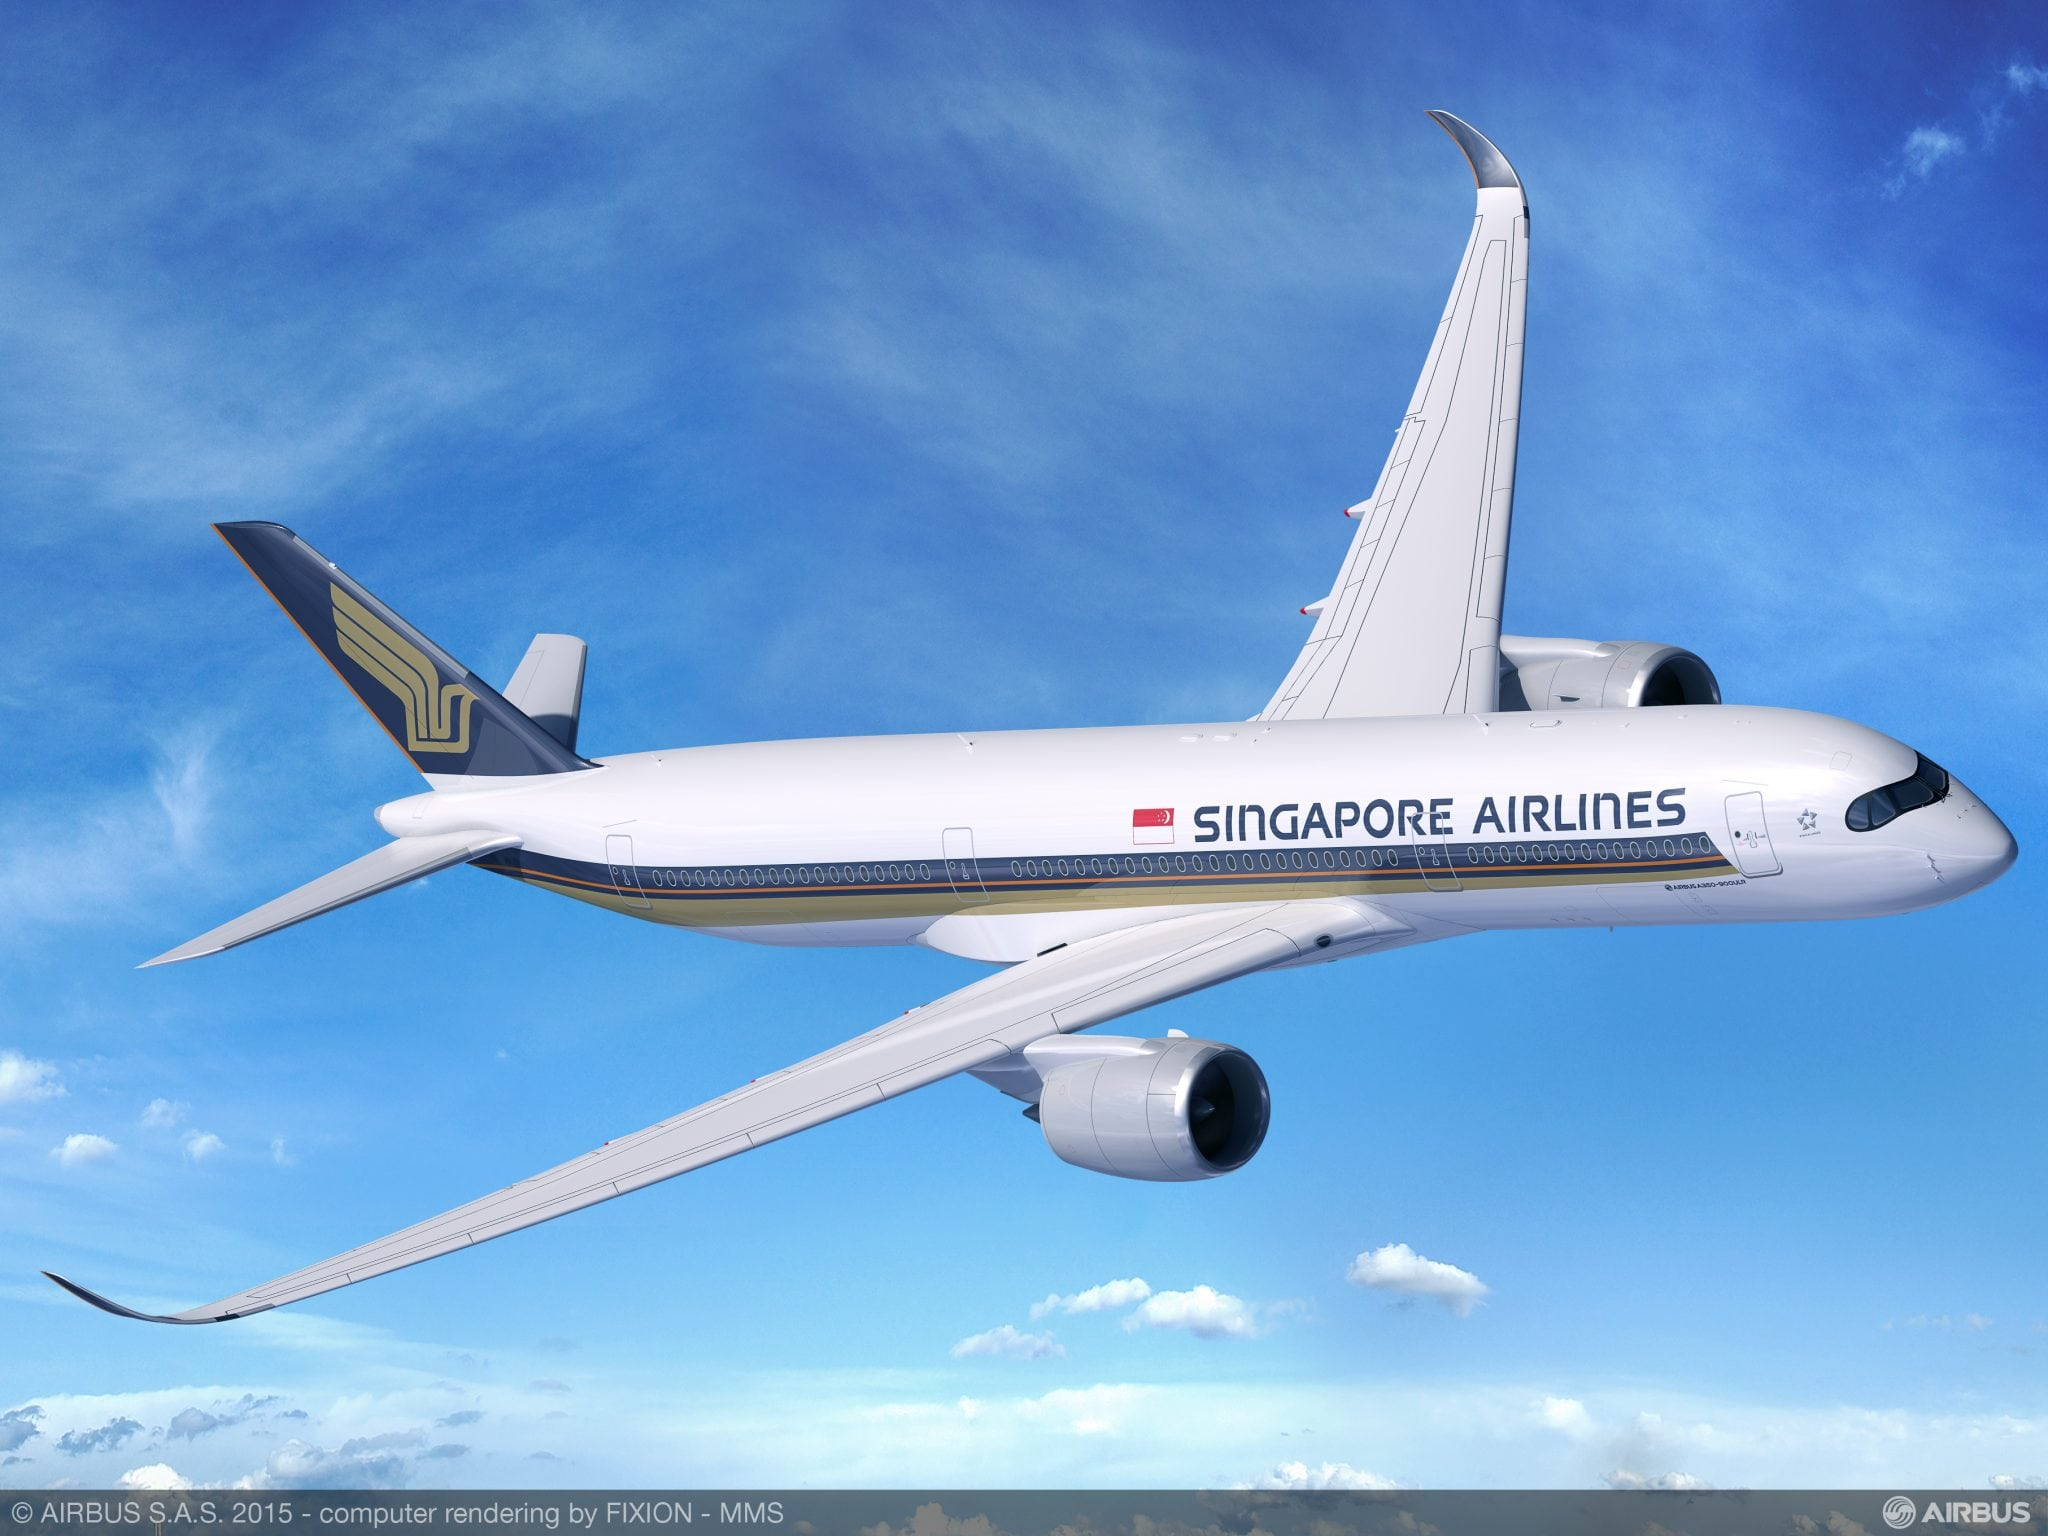 Airbus new A350-900 ultra long range aircraft in Singapore Airlines livery